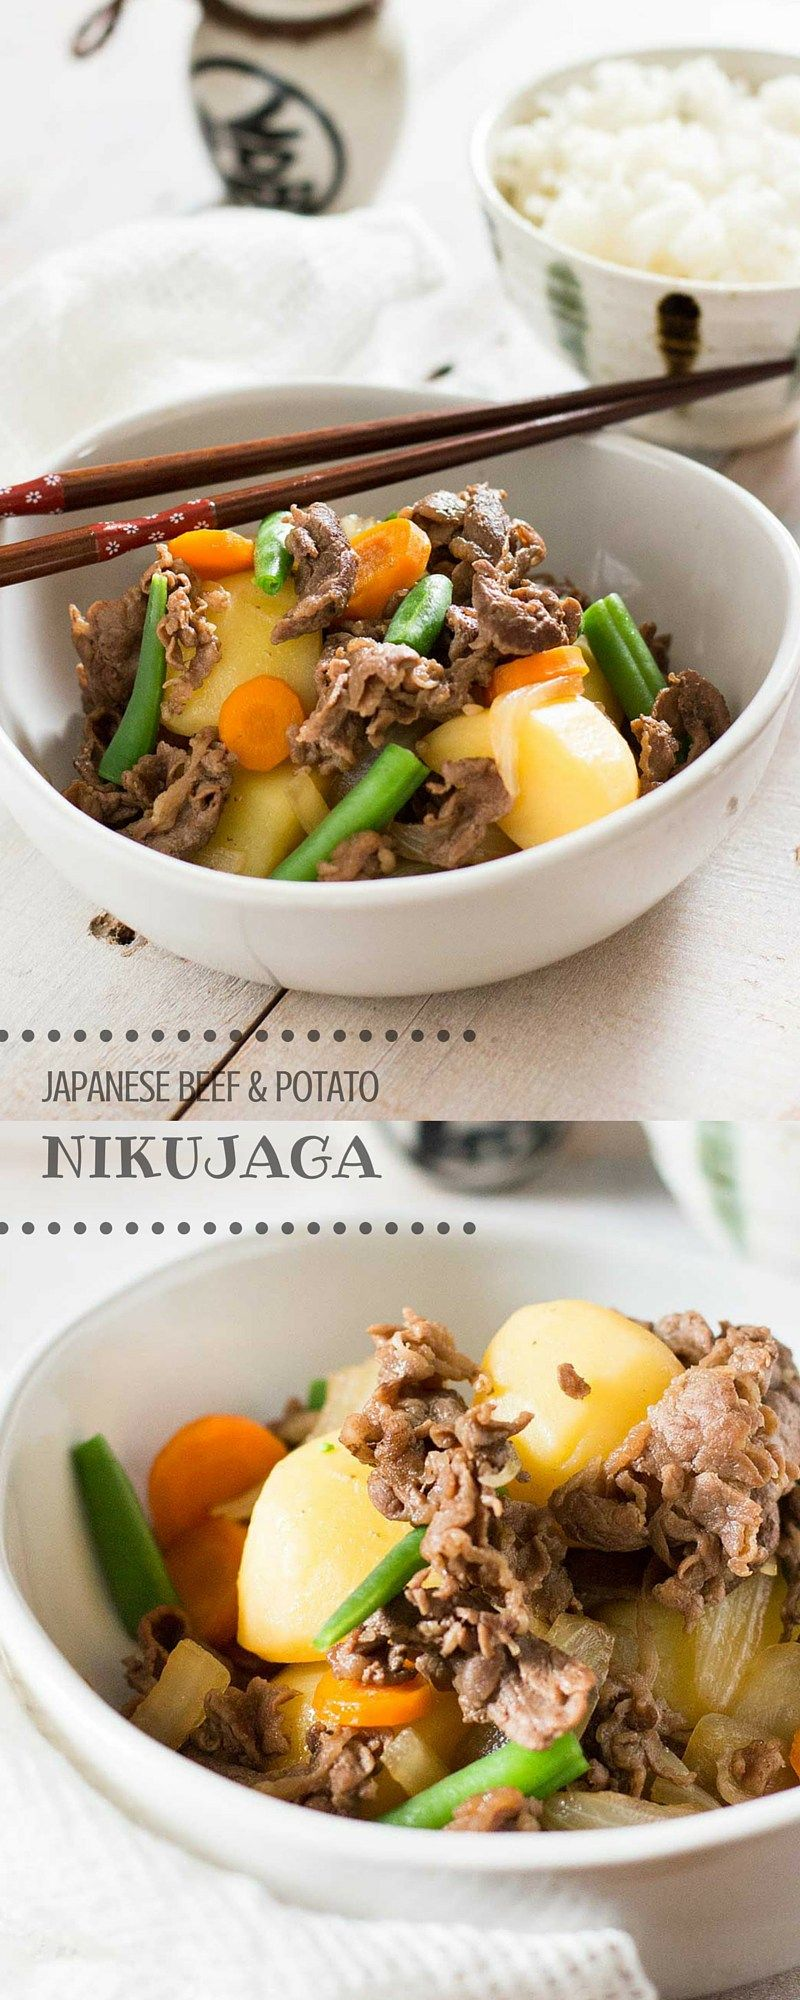 Nikujaga - Japanese Beef and Potatoes